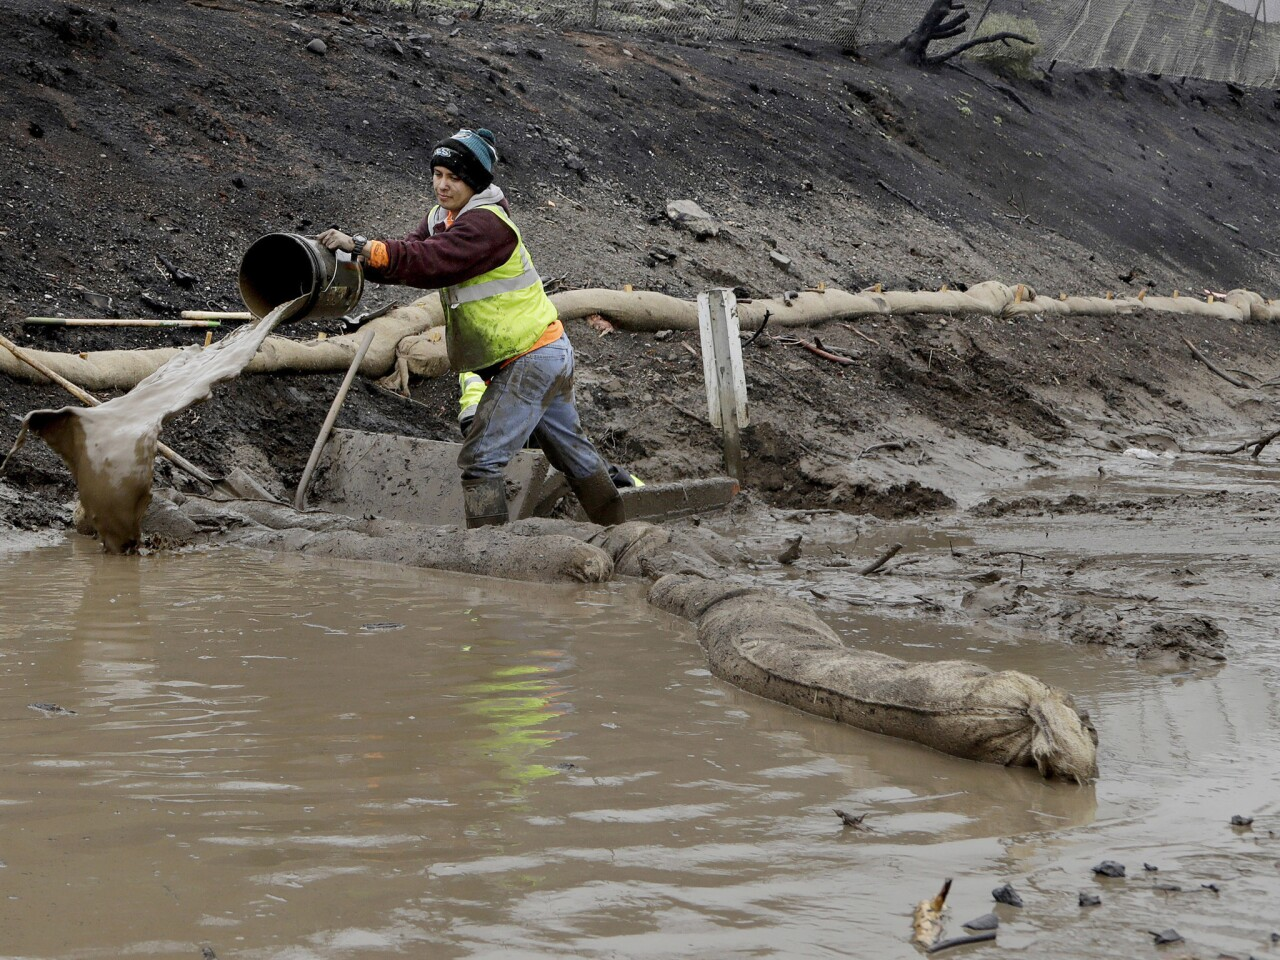 A worker uses a bucket to clear out a drainage ditch along Pacific Coast Highway, north of El Matador Beach in Malibu.